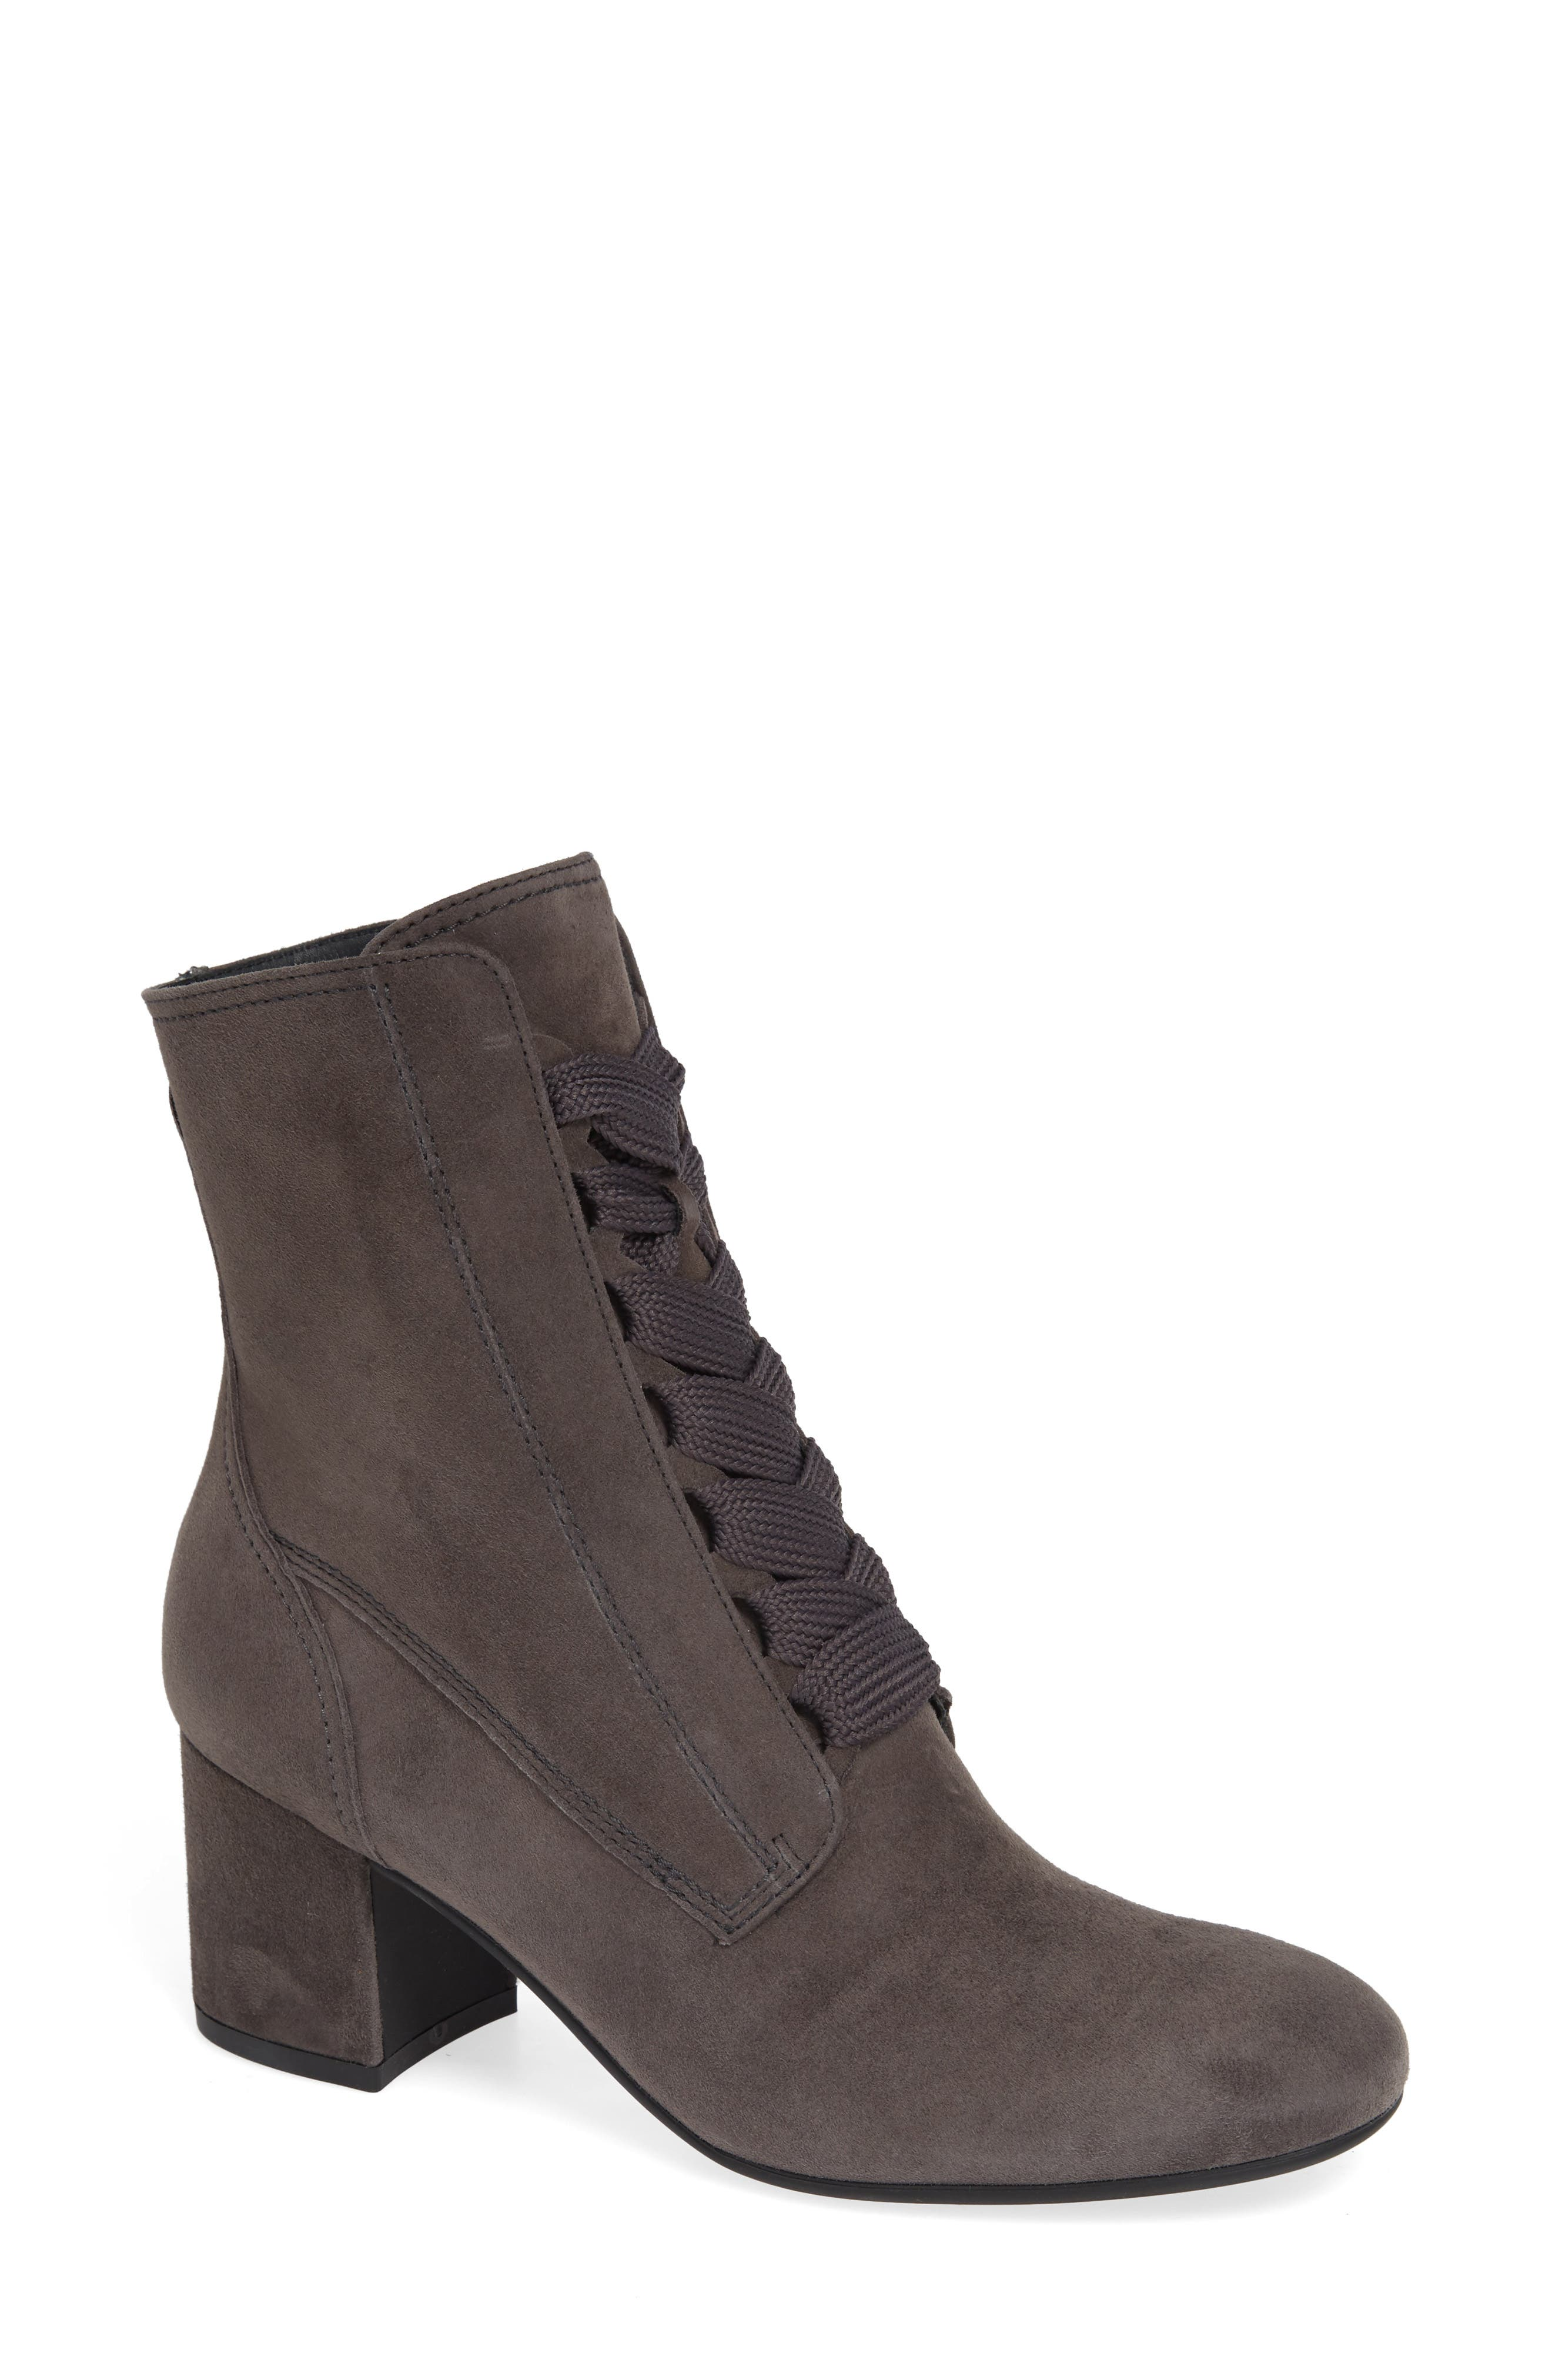 Paul Green Tracy Lace-Up Bootie - Grey